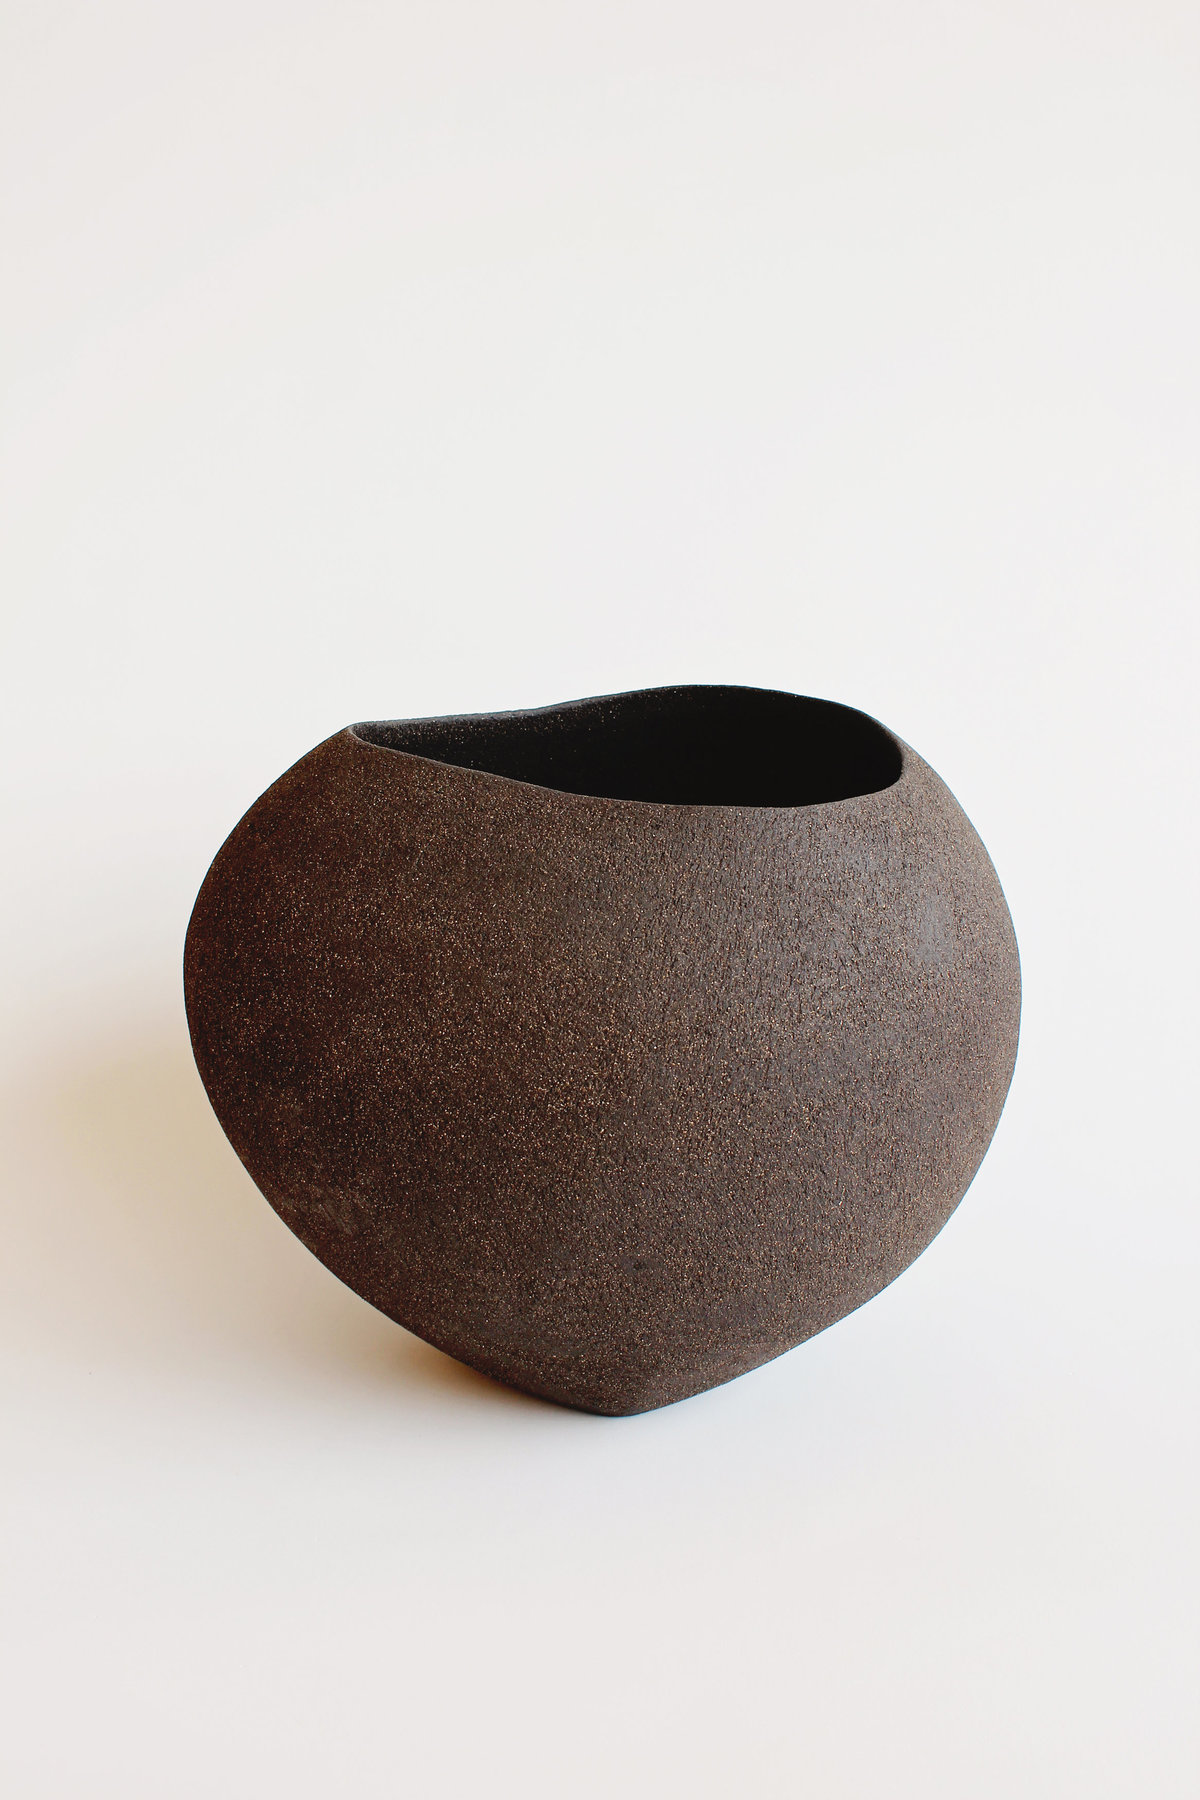 Yasha-Butler-Ceramic-Sculpture-Bowl-Black-Brown-Lithic_1453-3500px